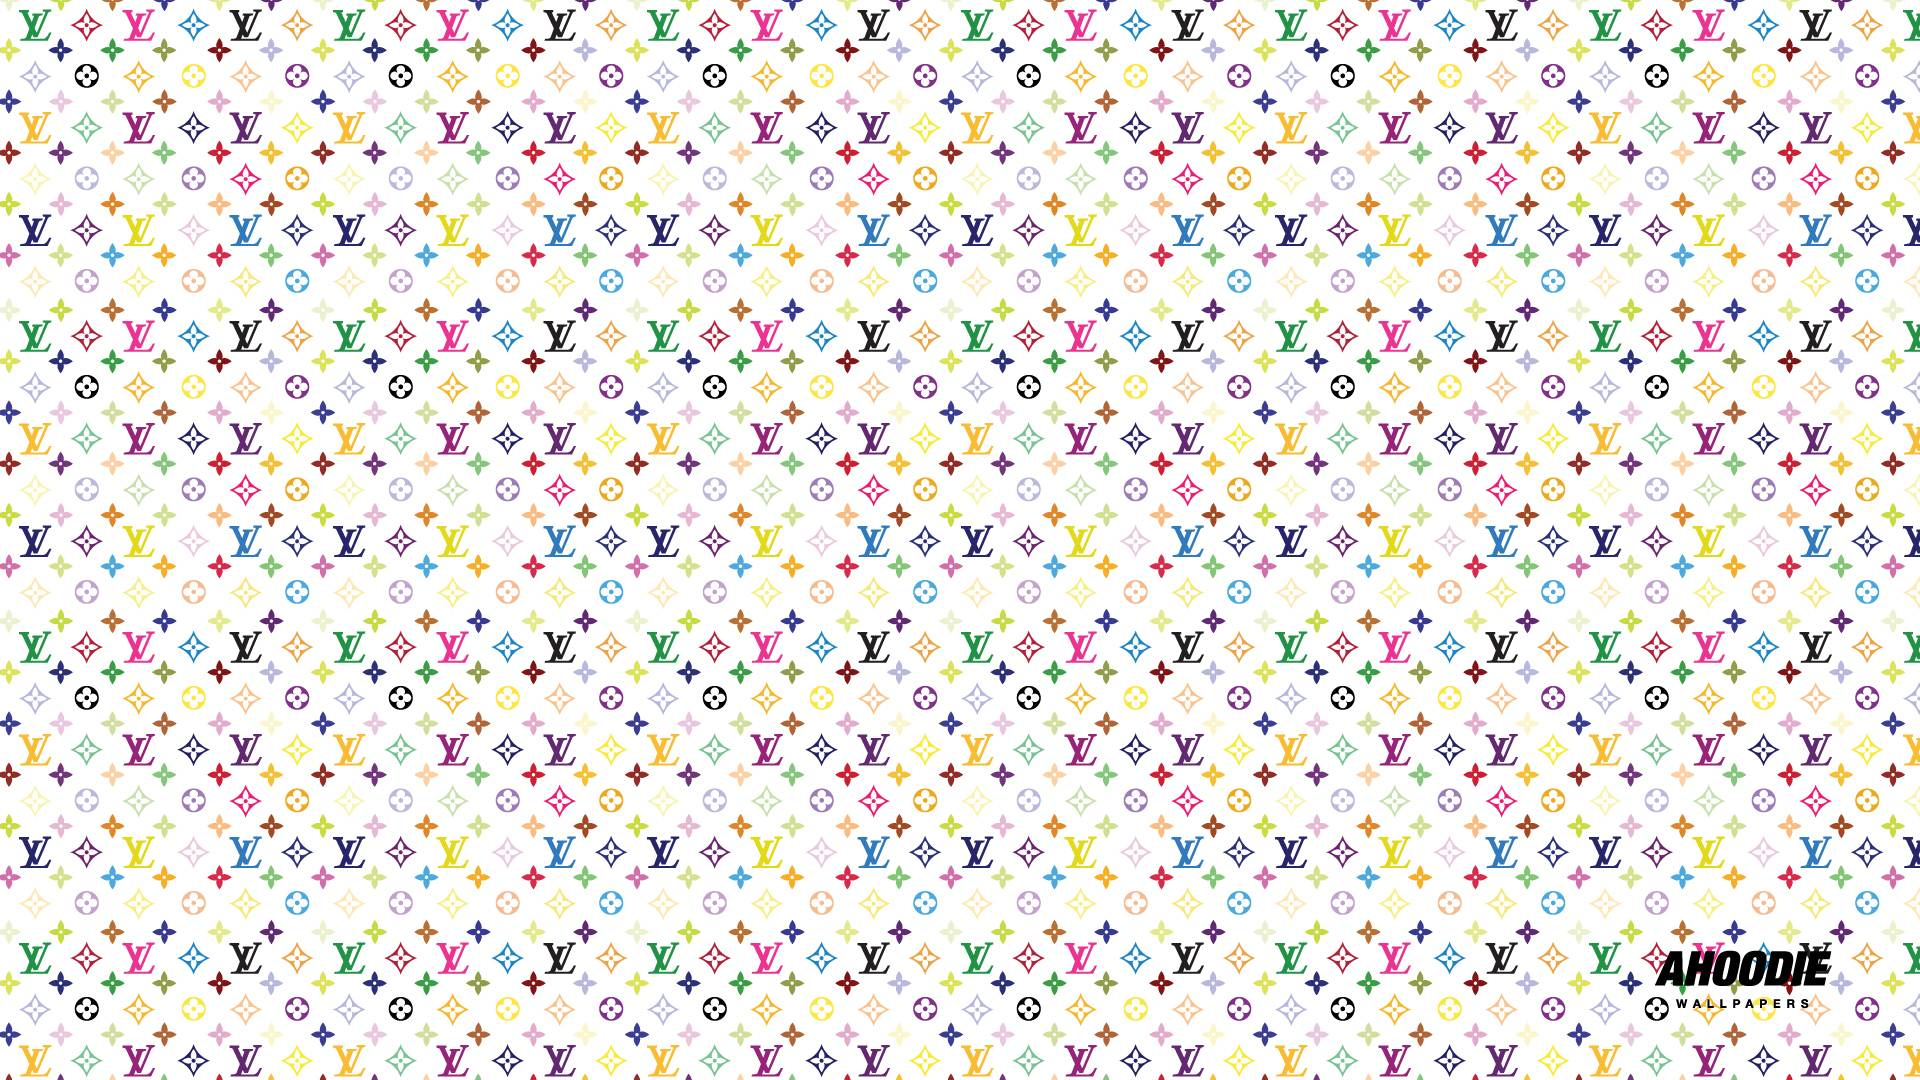 Fonds d&Louis Vuitton : tous les wallpapers Louis Vuitton